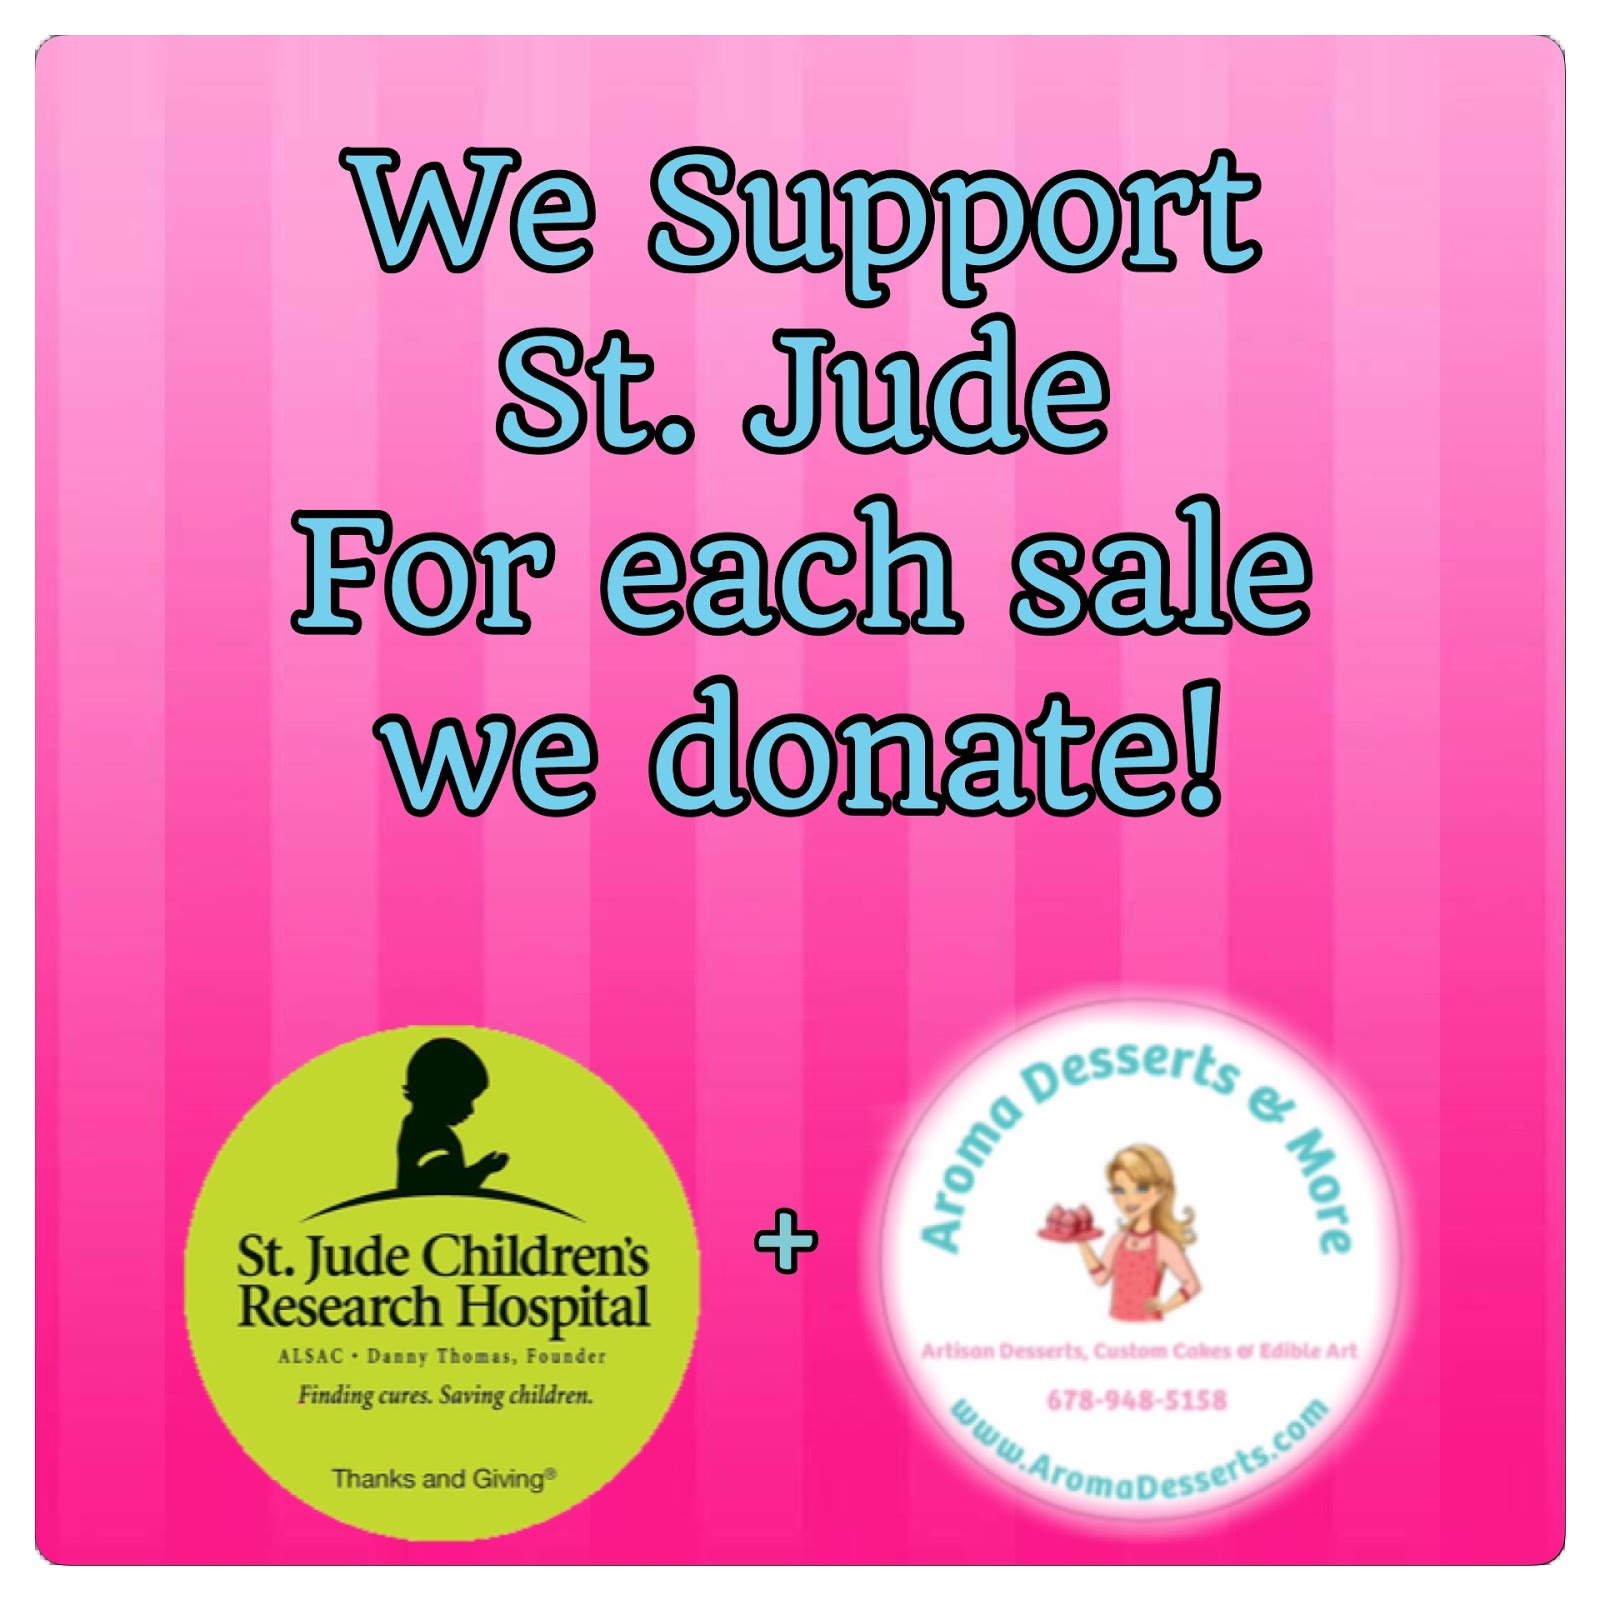 We Support St. Jude Children Research Hospital